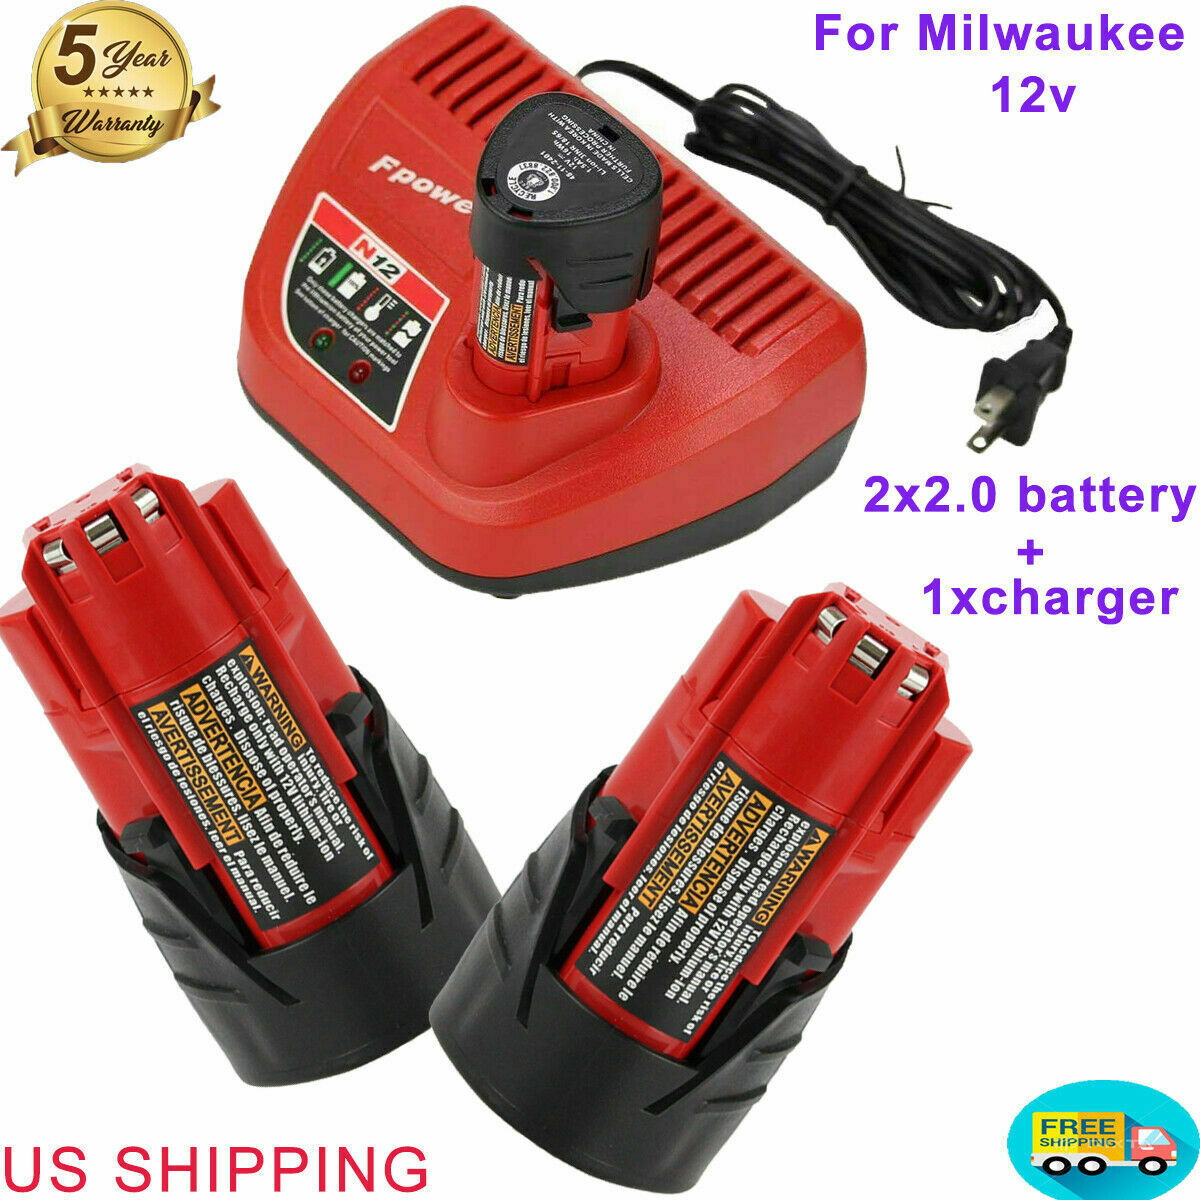 M12 Charger 12V 2.0Ah Extended Capacity Li-ion Battery 48-11-2460 for Milwaukee